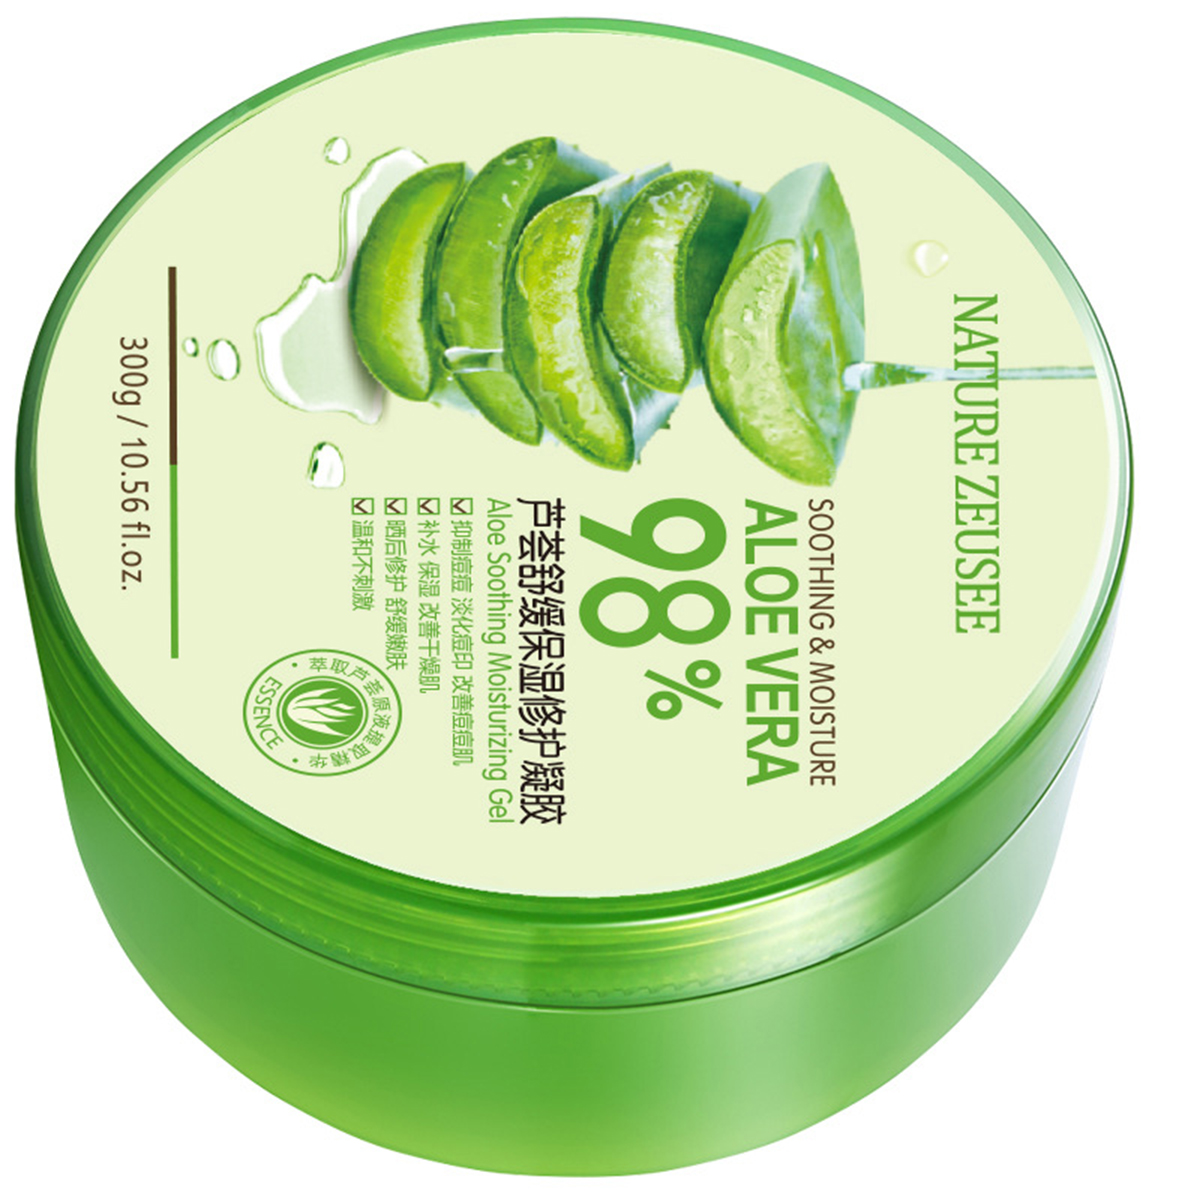 300g​ Nature Aloe Vera Gel Organic Oil-Control Face Skin Care Hydrating Repair Smoothing Moisturizing Gel Body Sunburn Relief